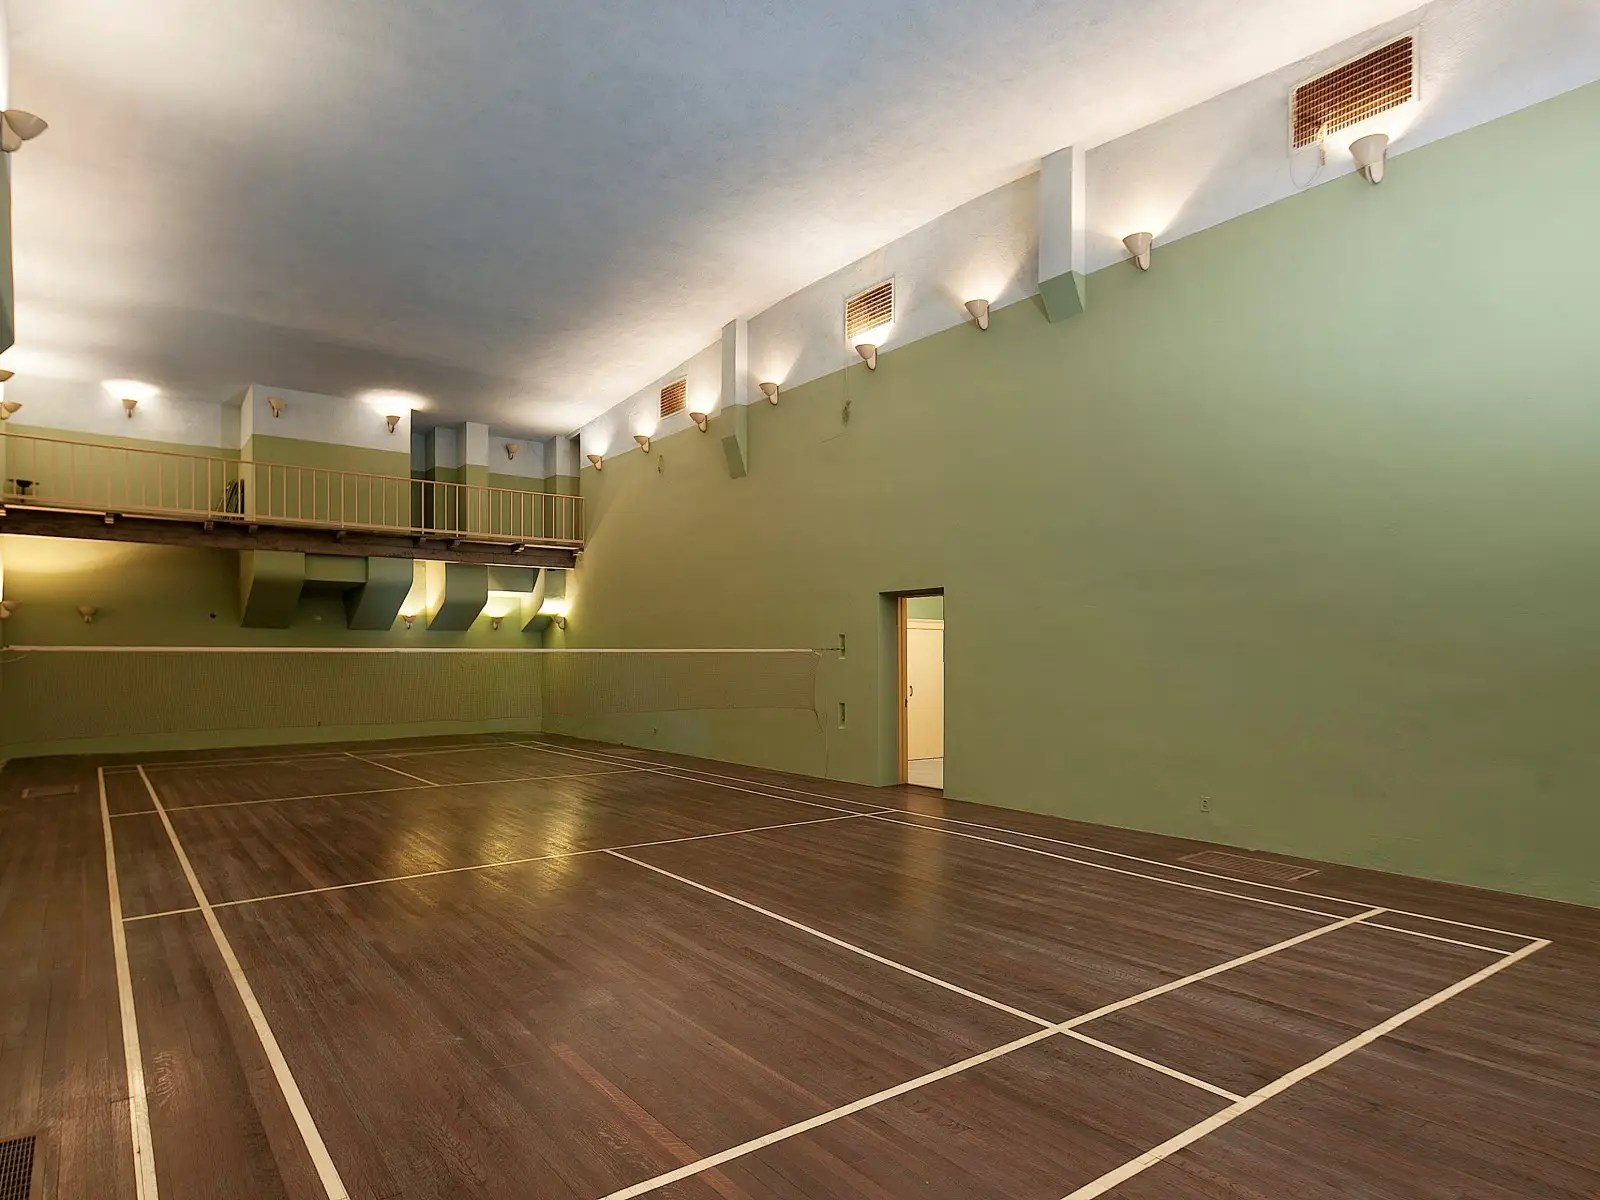 Downstairs is an underground badminton court with its own observation gallery.